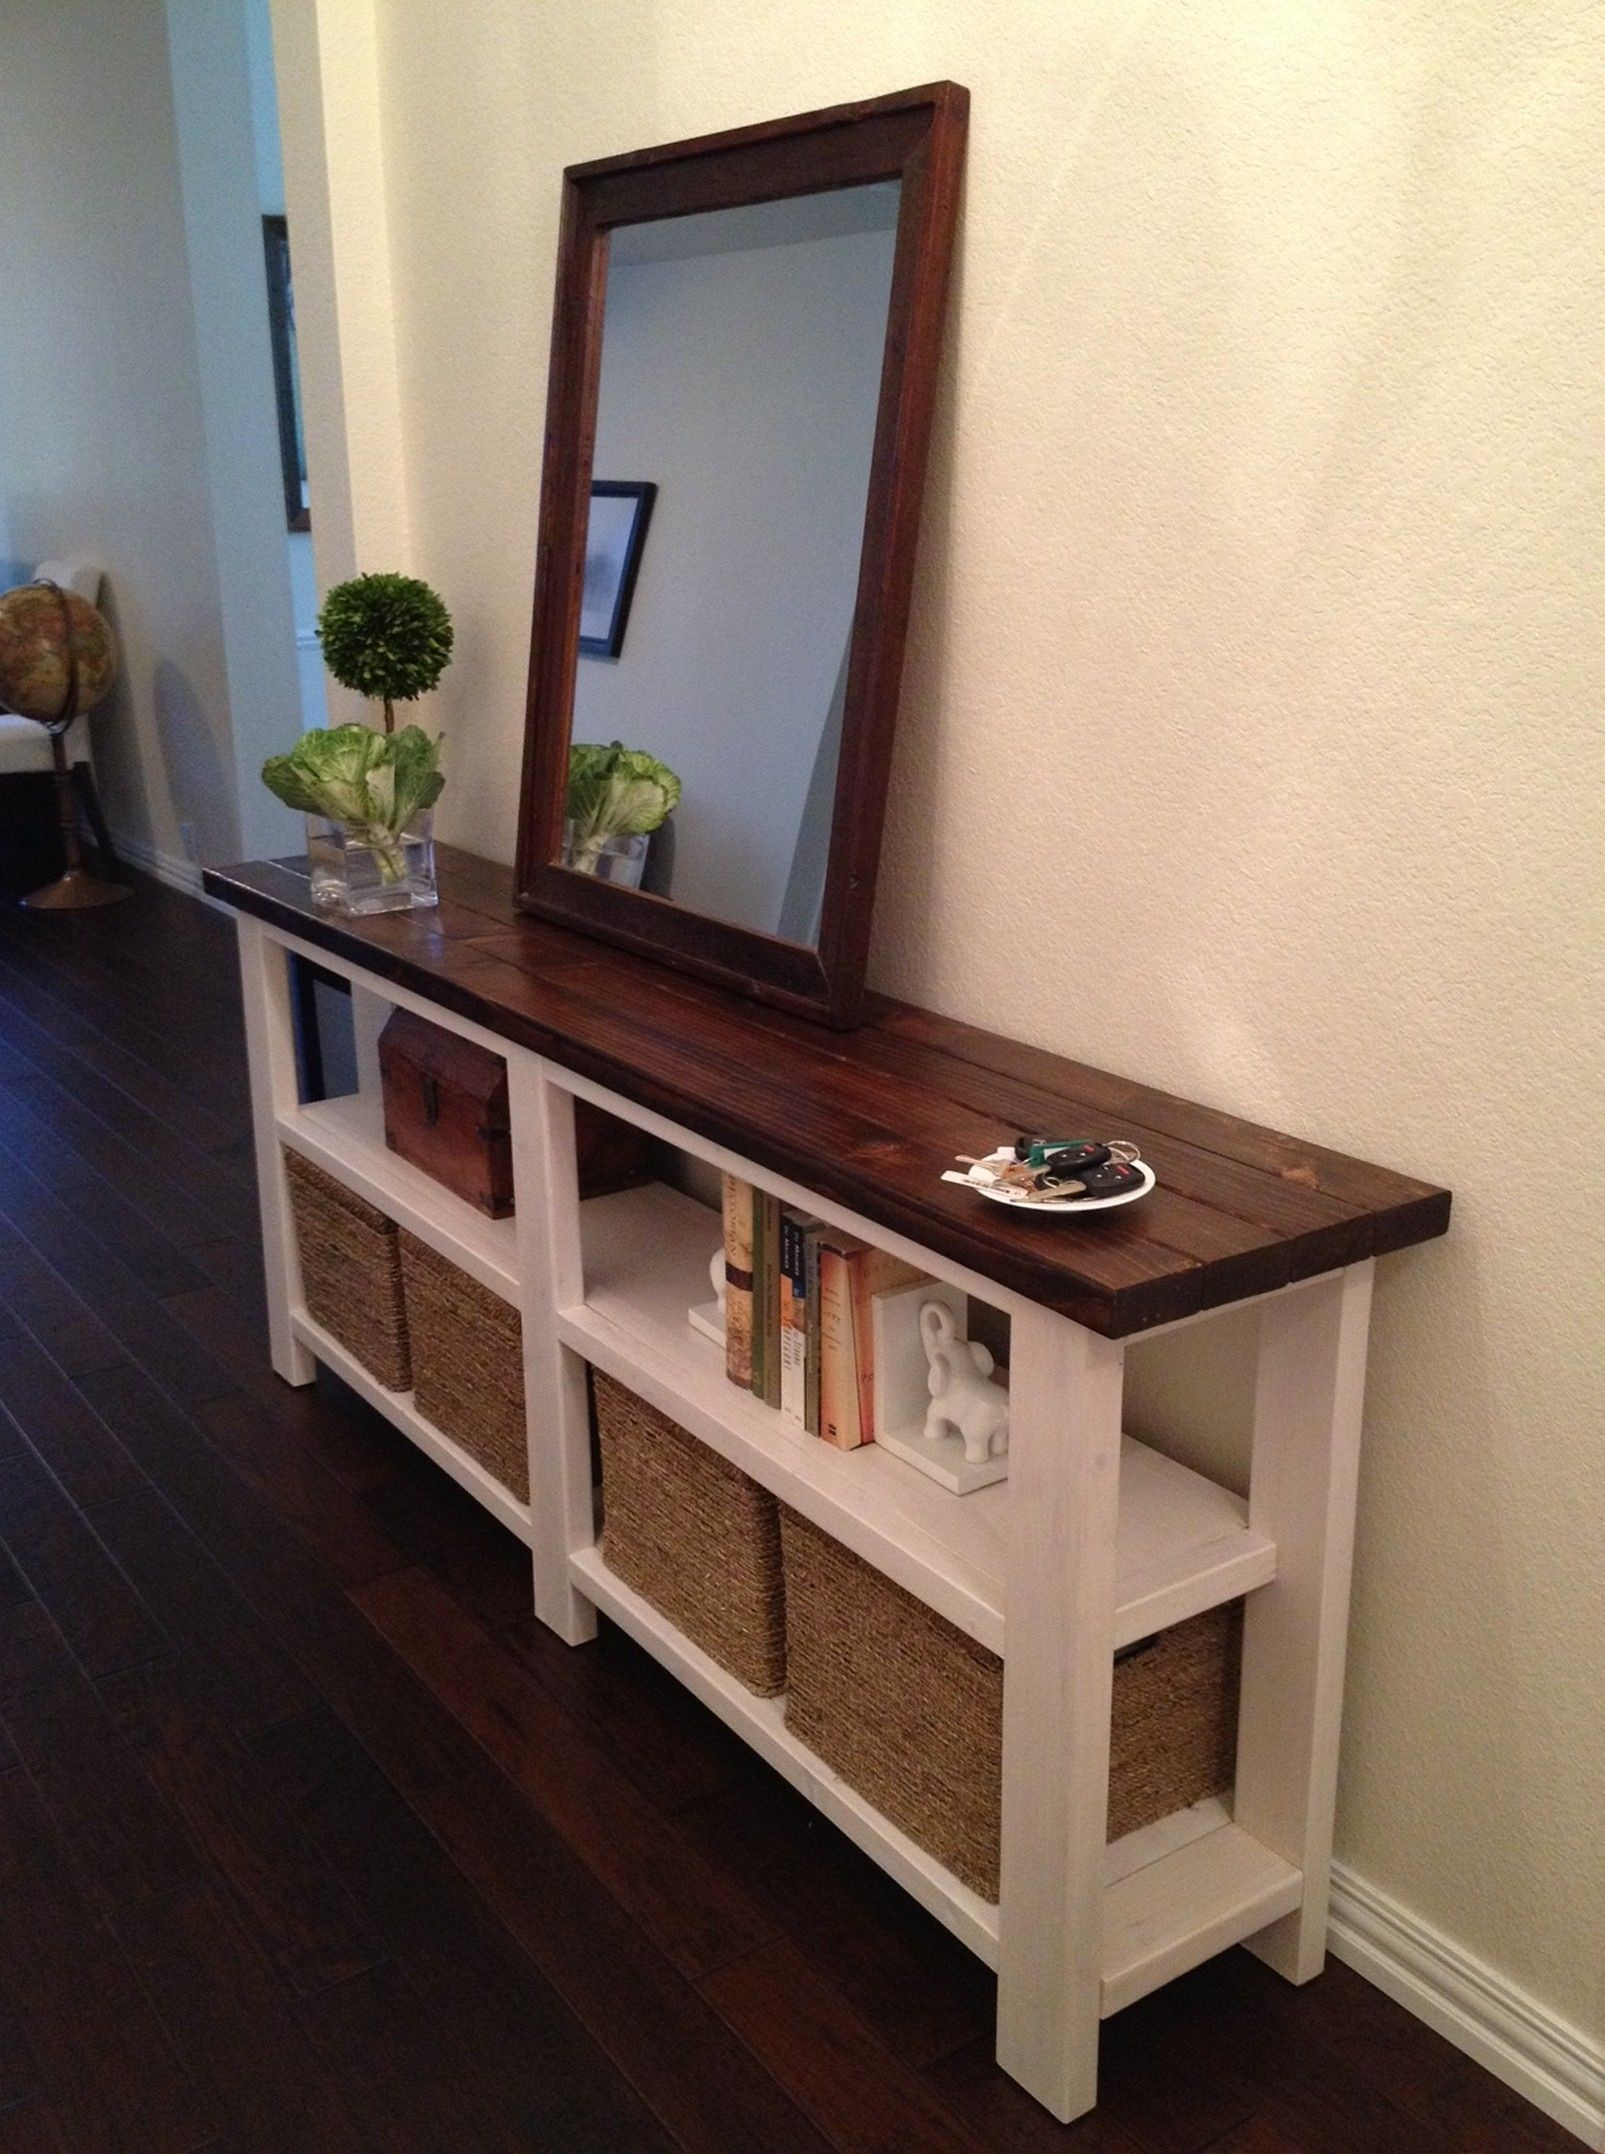 Ordinaire Narrow Console Table With Storage